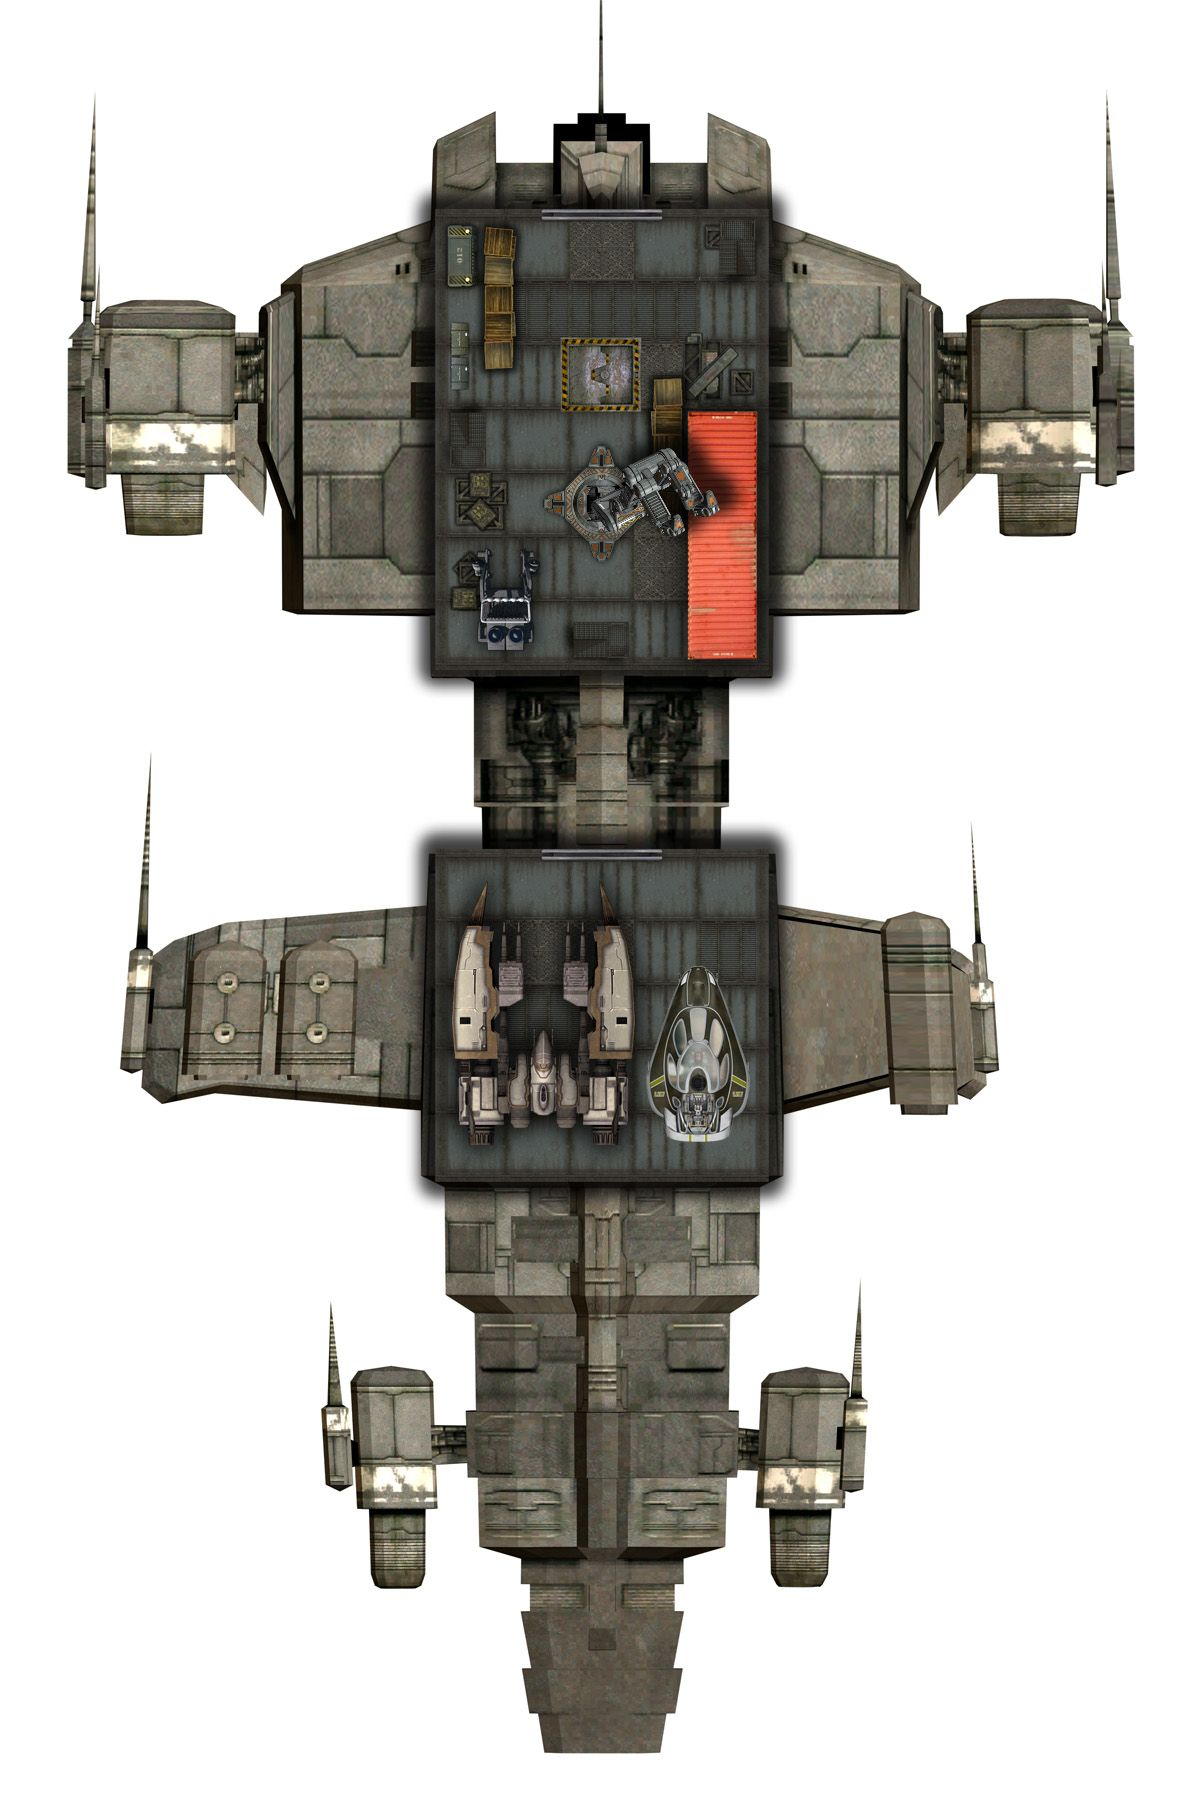 Dundjinni Mapping Software - Forums: Serenity map (sci-fi ...